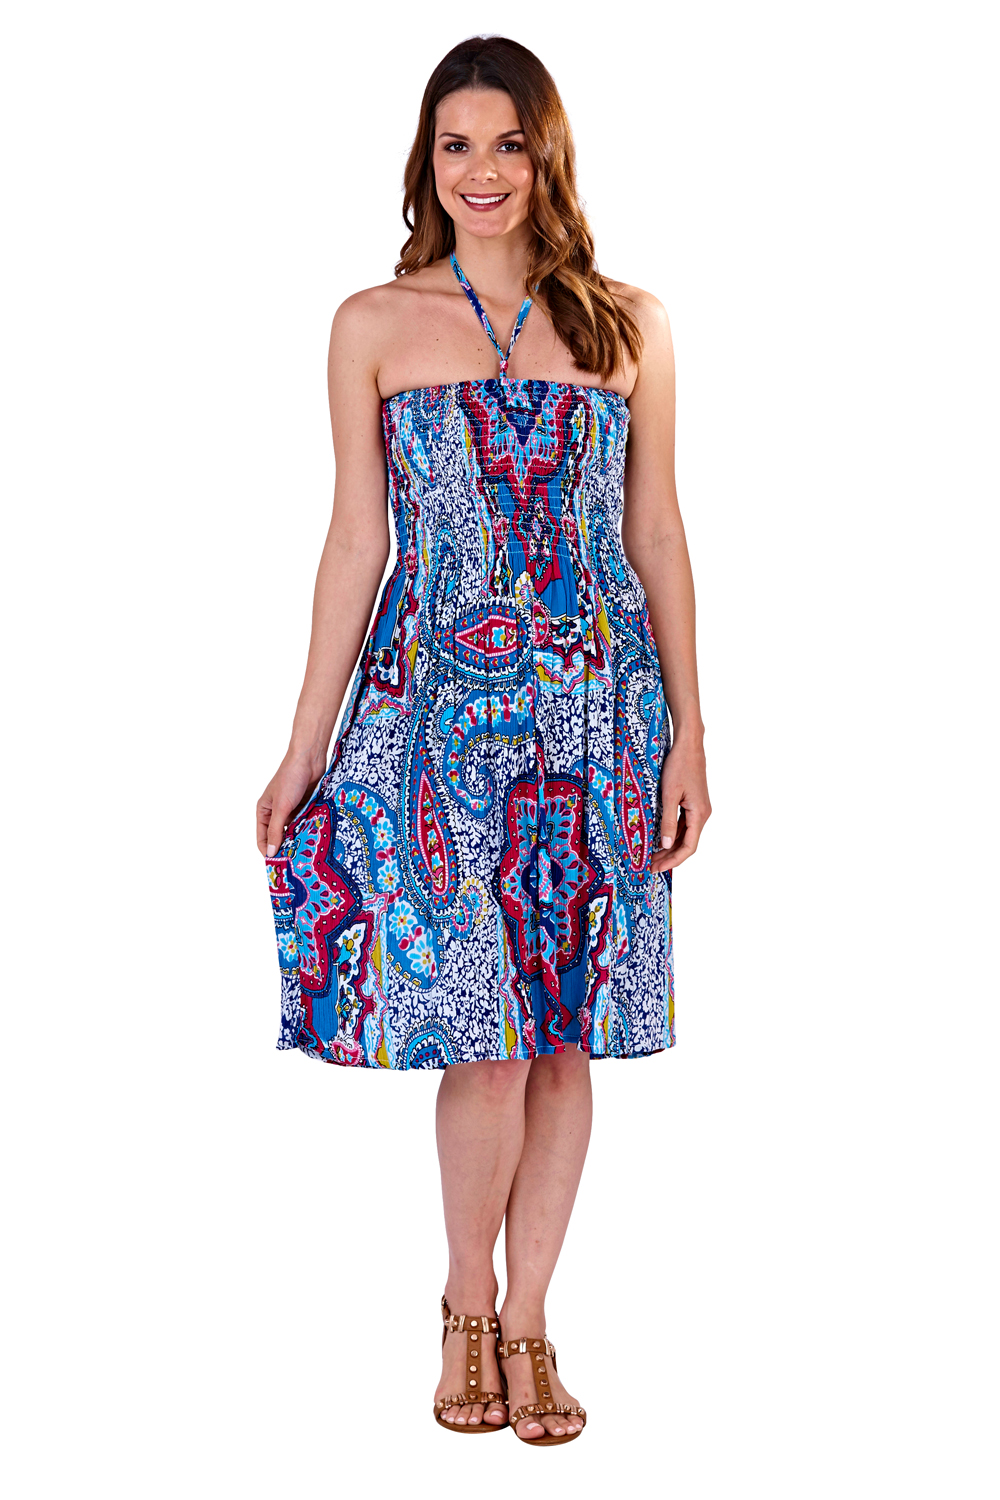 Pistachio-Womens-Patterned-3-In-1-Dresses-Ladies-New-Cotton-Summer-Beach-Skirts thumbnail 16